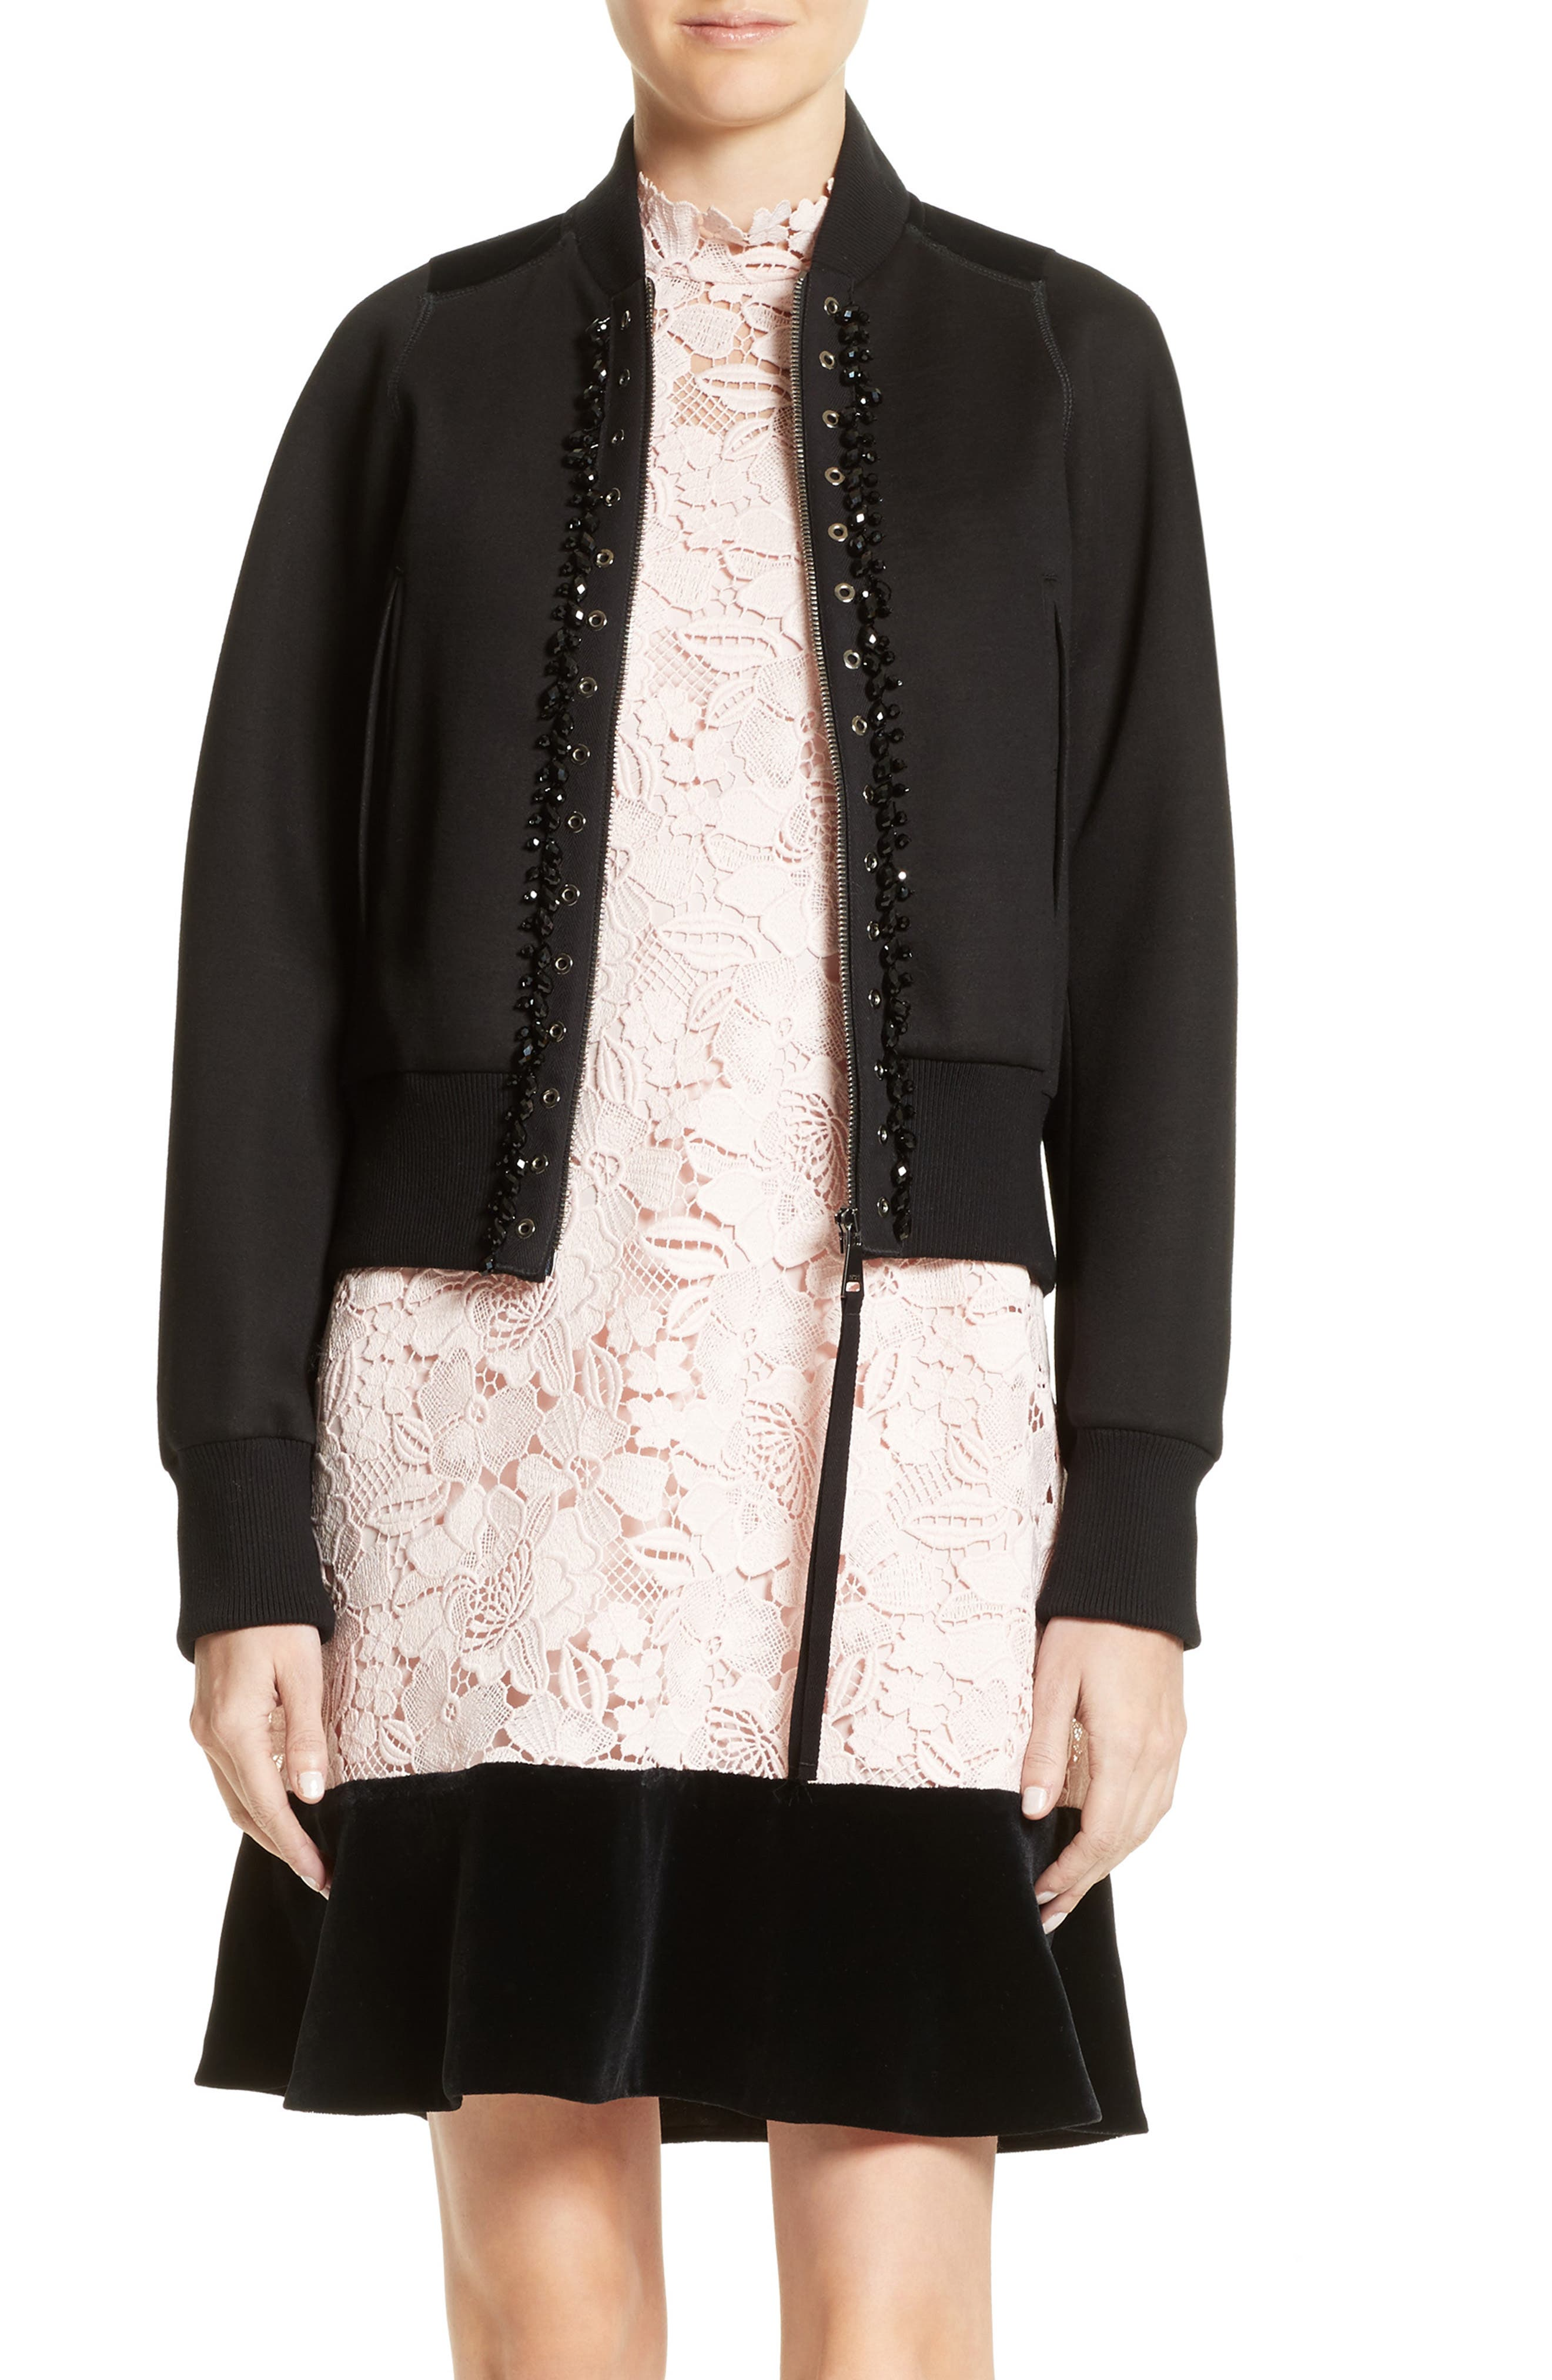 N°21 Floral Embroidered Bomber Jacket